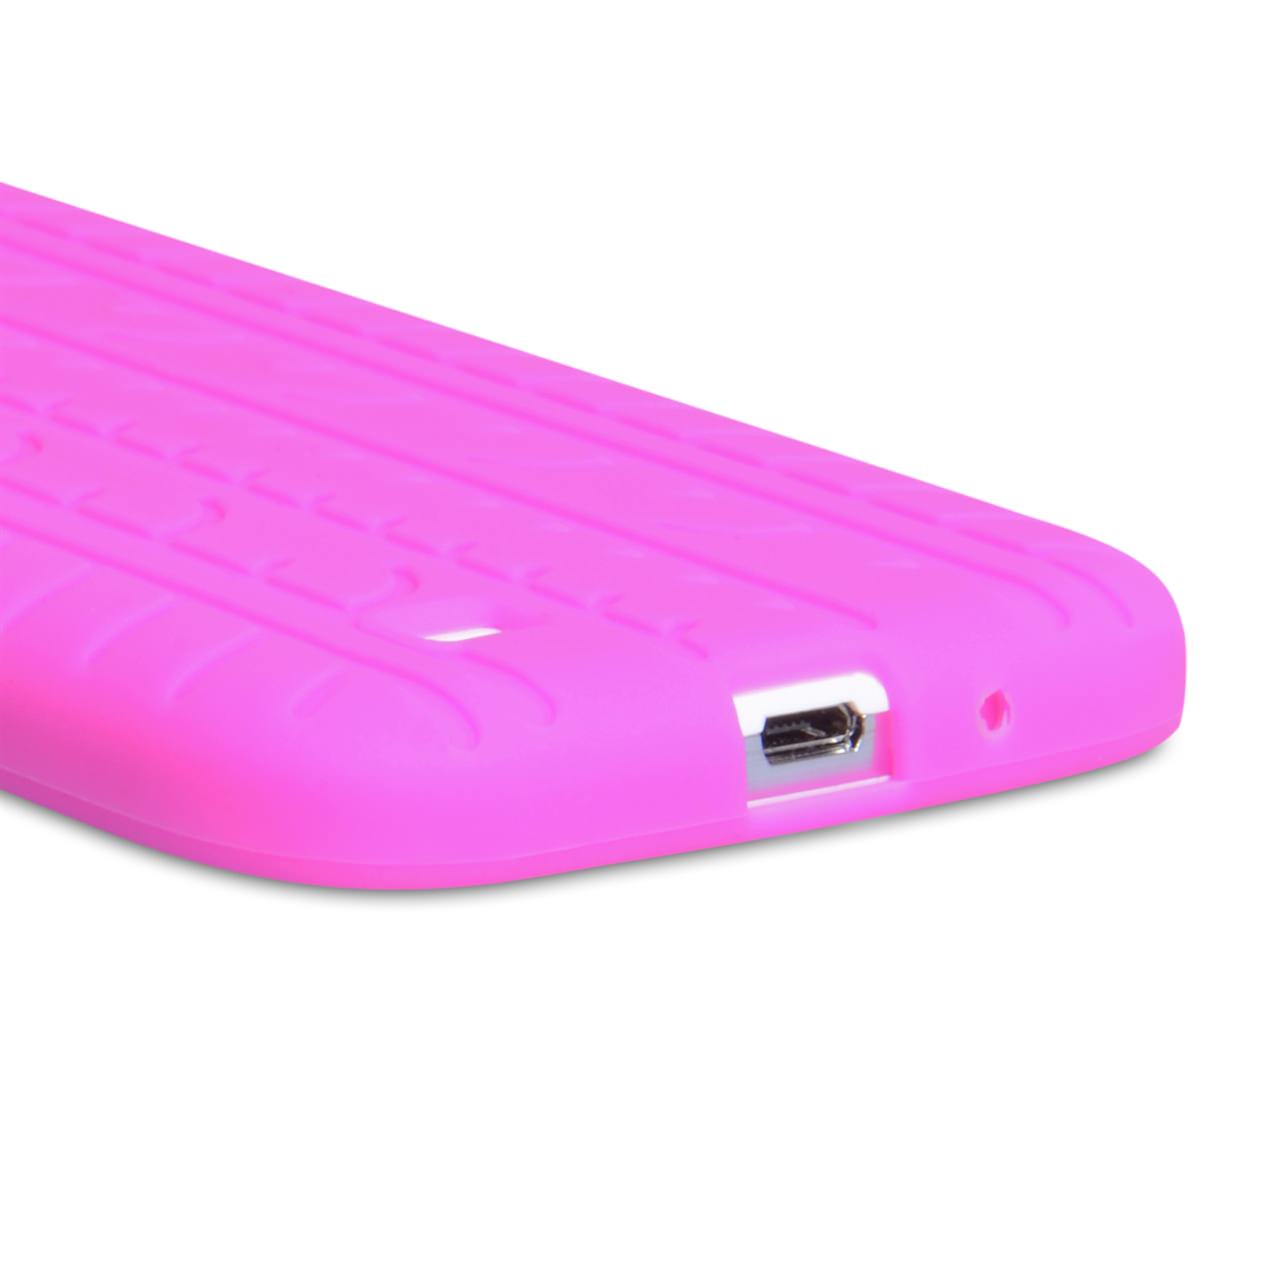 YouSave Accessories Samsung Galaxy S4 Tyre Gel Case - Hot Pink